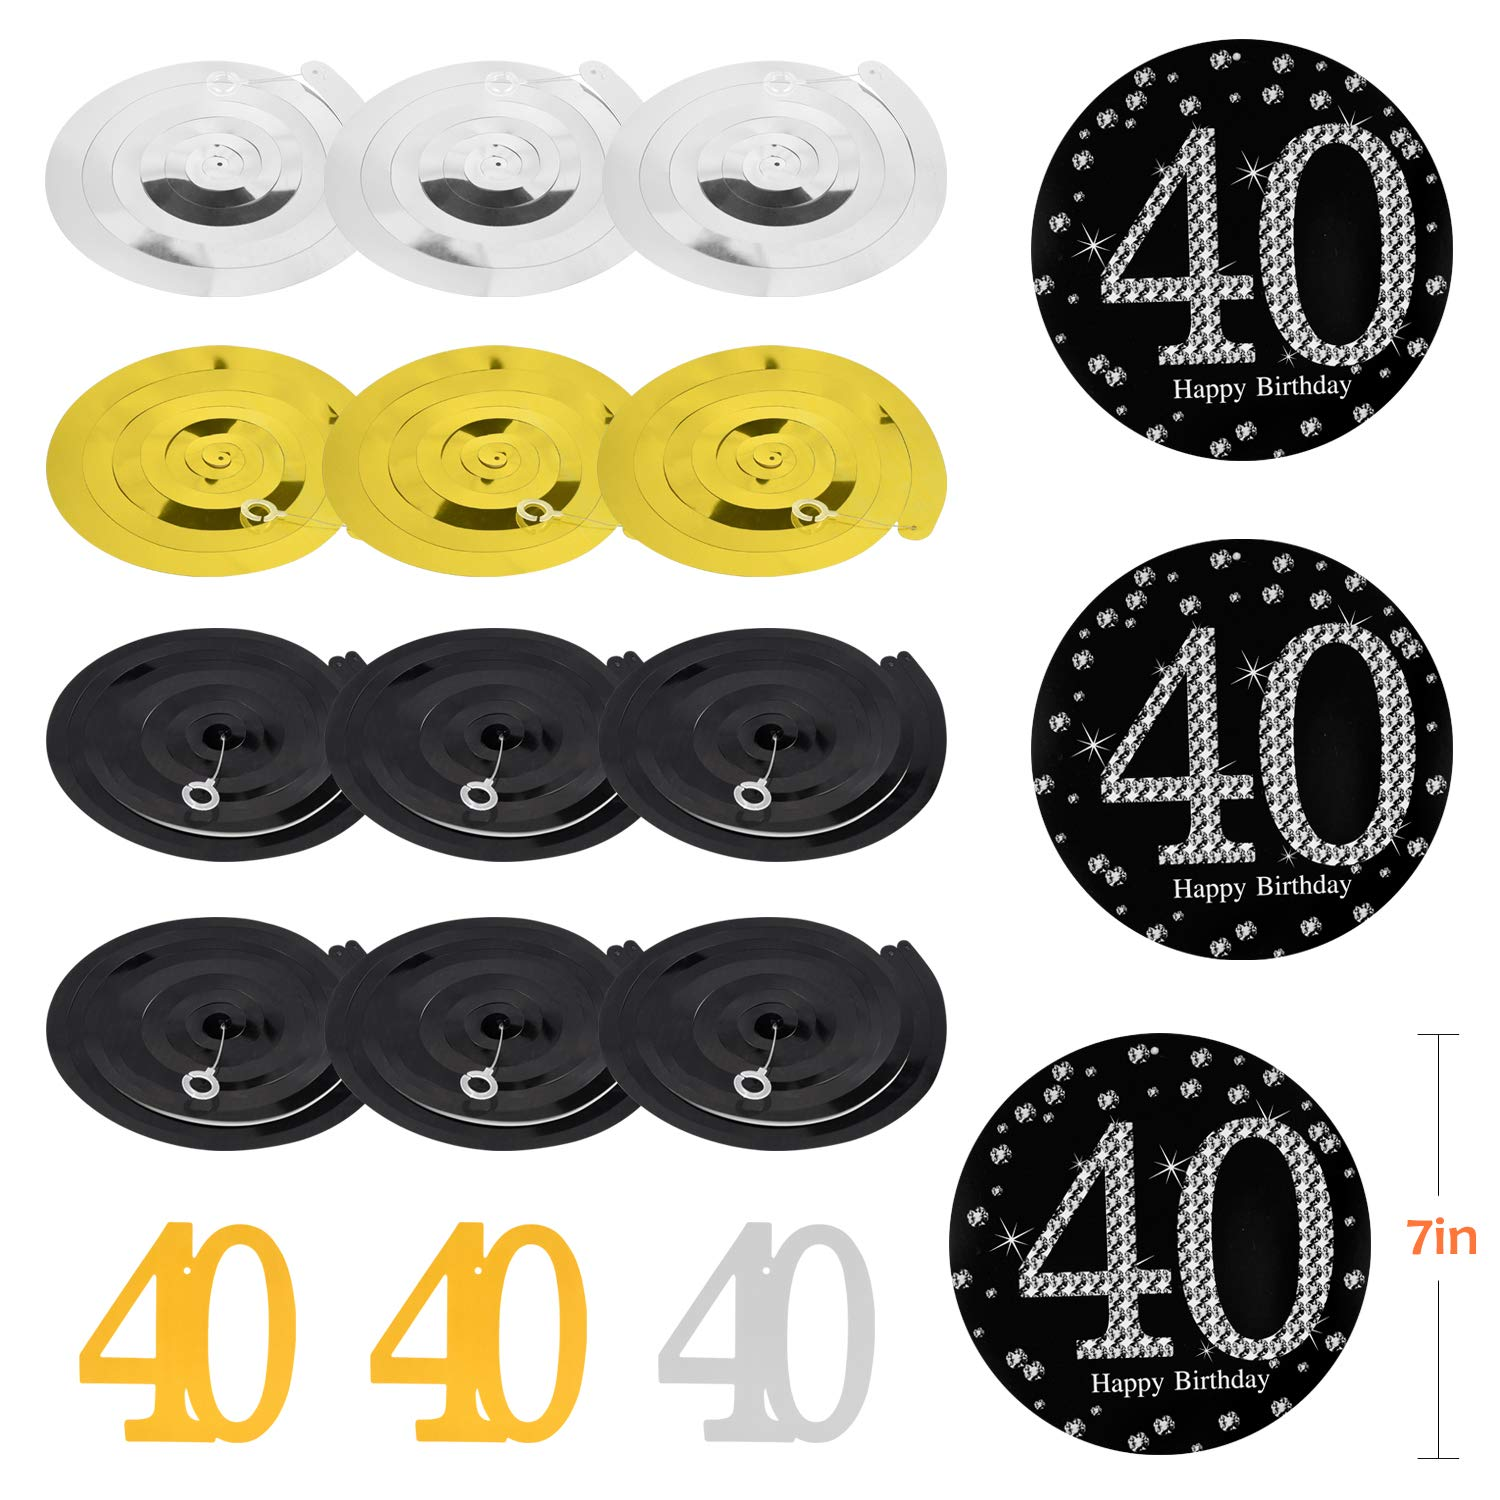 ZukoCert 40th Birthday Decorations Kit Gold Glittery Cheers to 40 Years Banner,6 Pcs Paper Pom Poms,20 Pcs Balloons,12 Pcs Sparkling Hanging Swirl Celebrate for 40th Anniversary Decorations Party Supplies